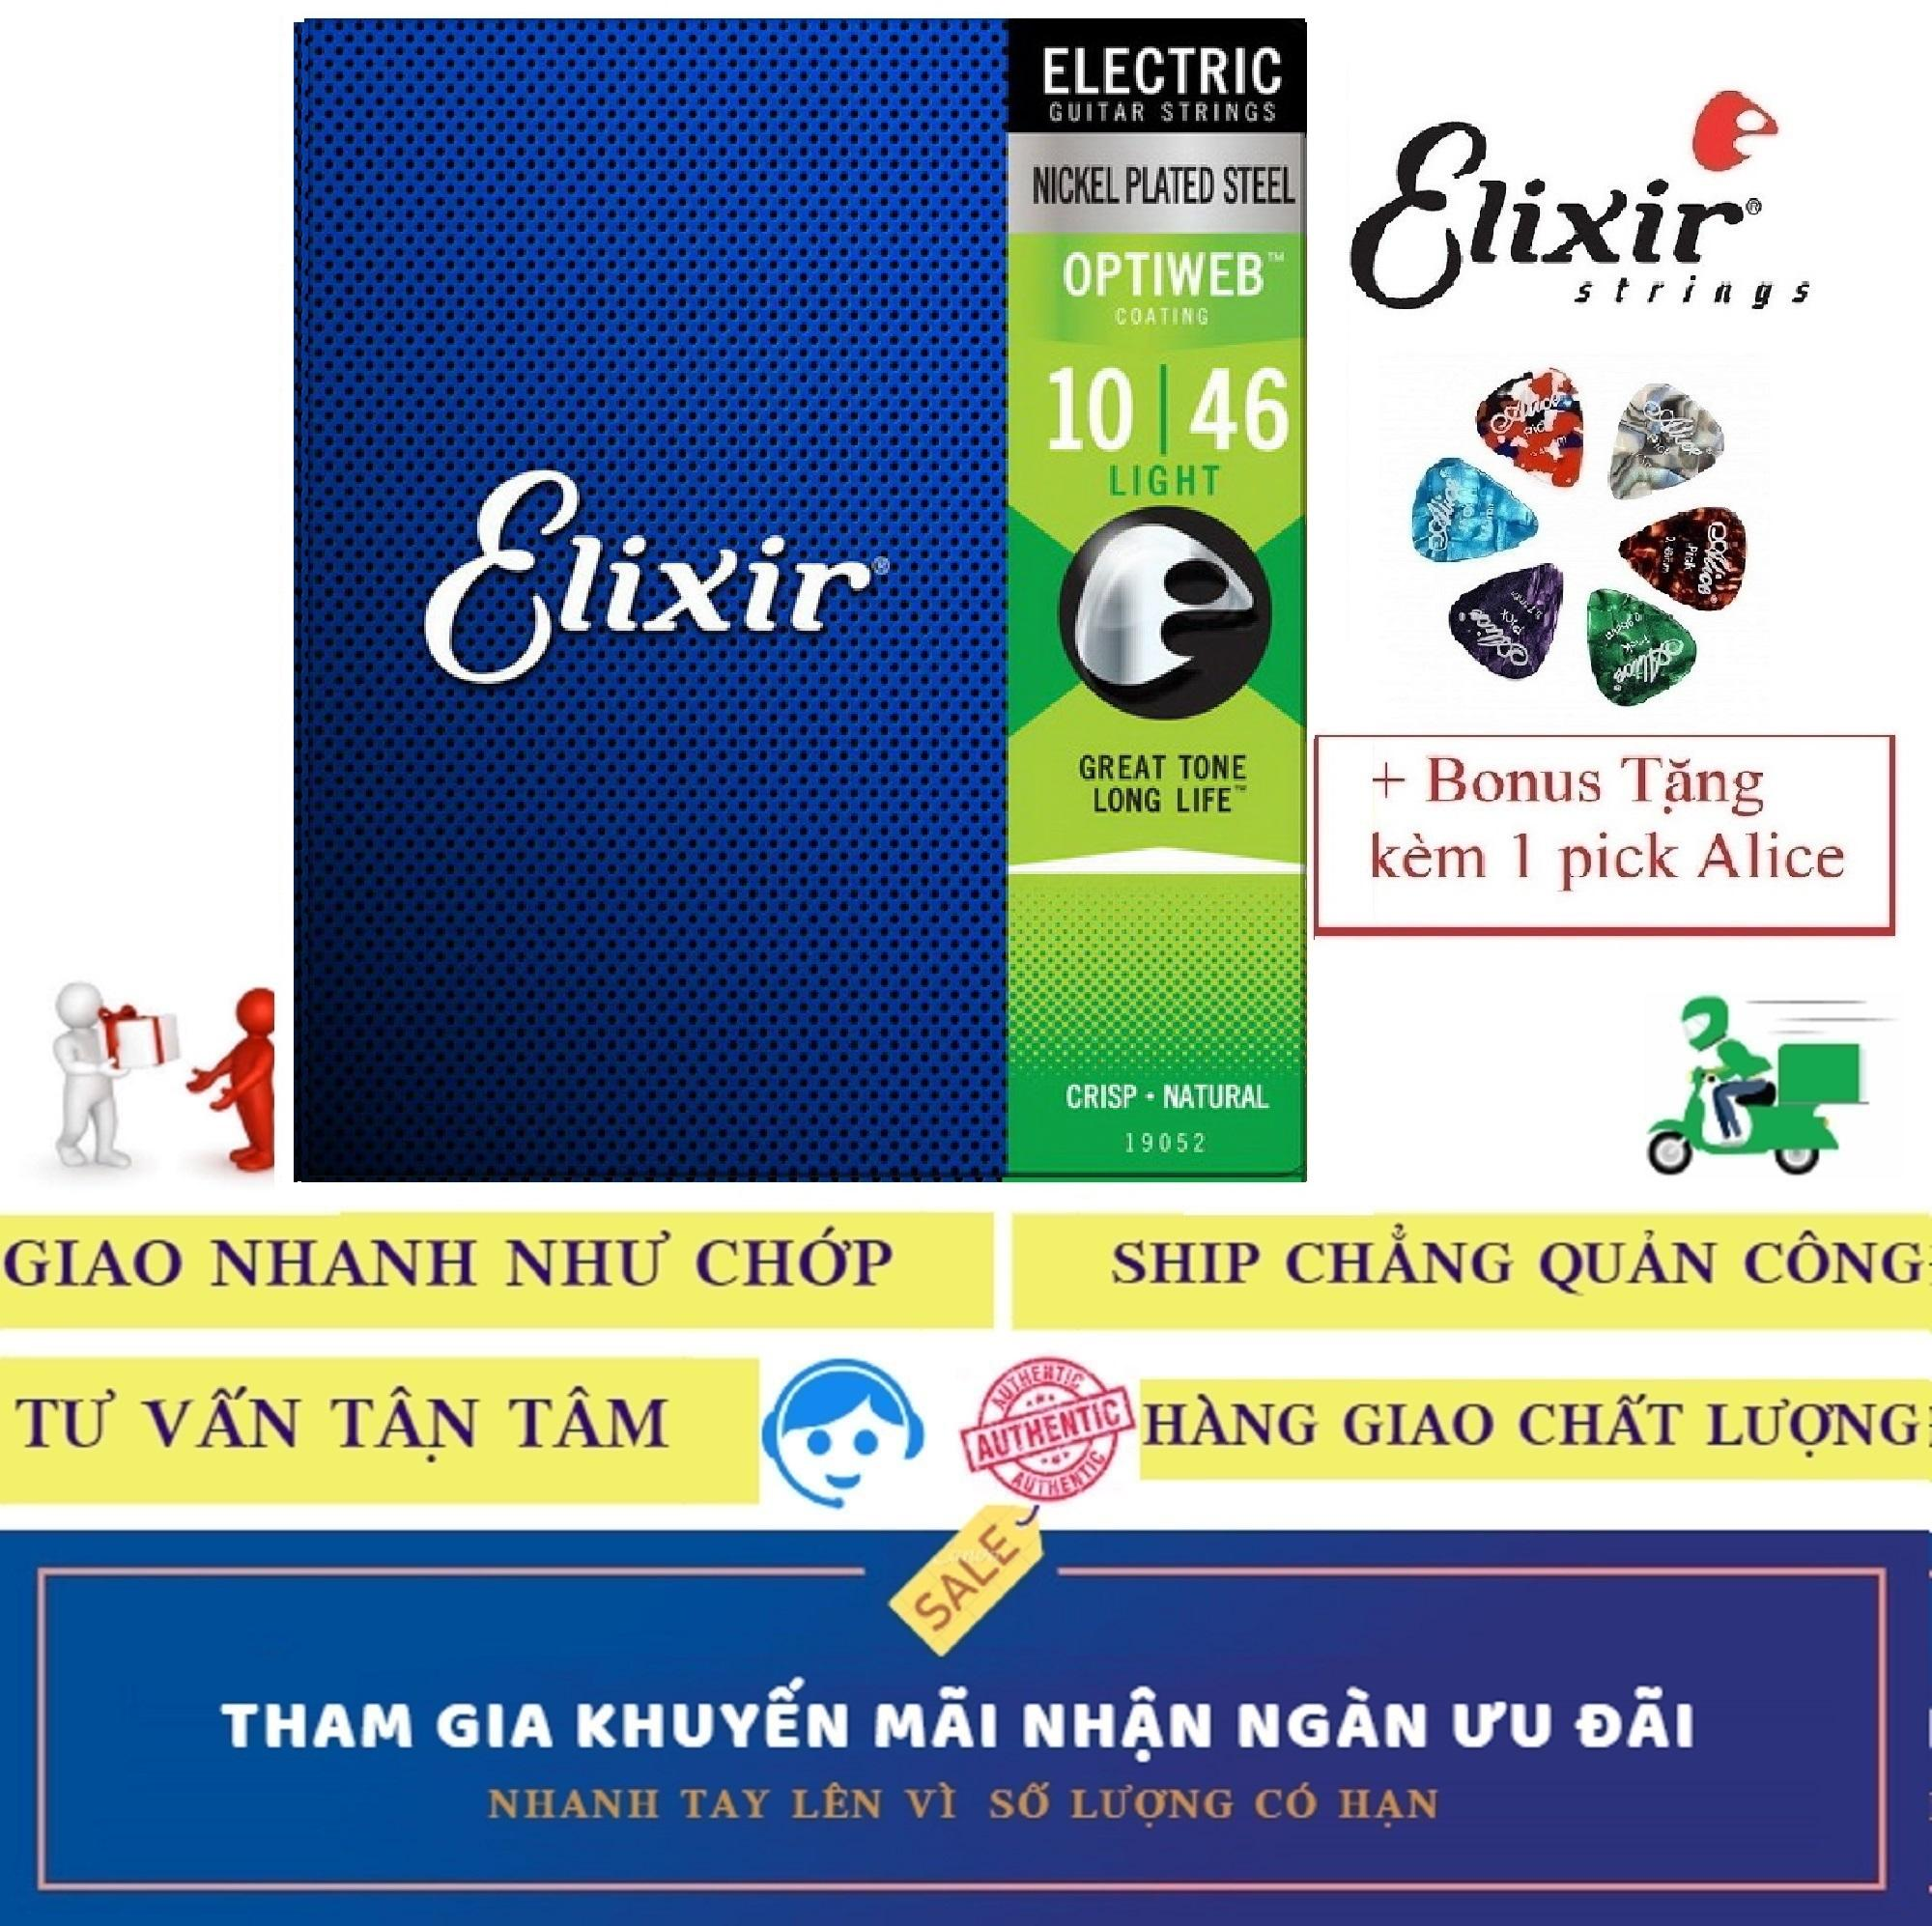 Bộ Dây Đàn Elixir cao cấp 19052 (Cỡ 10 - Light) Electric Guitar điện Nickel Plated Steel With OPTIWEB COATING Strings